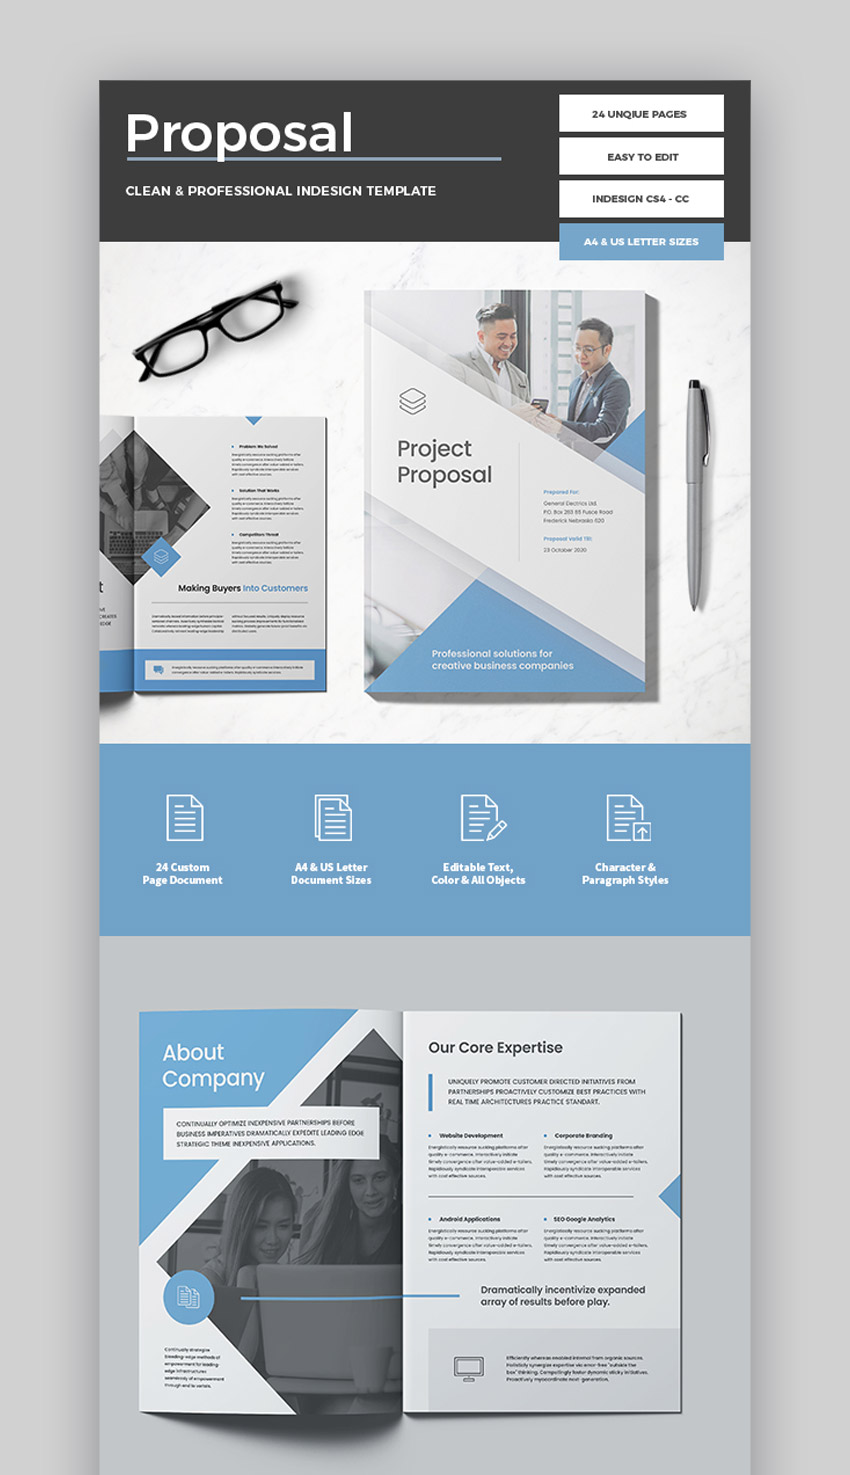 35 Best Business Proposal Templates For Projects In 2021